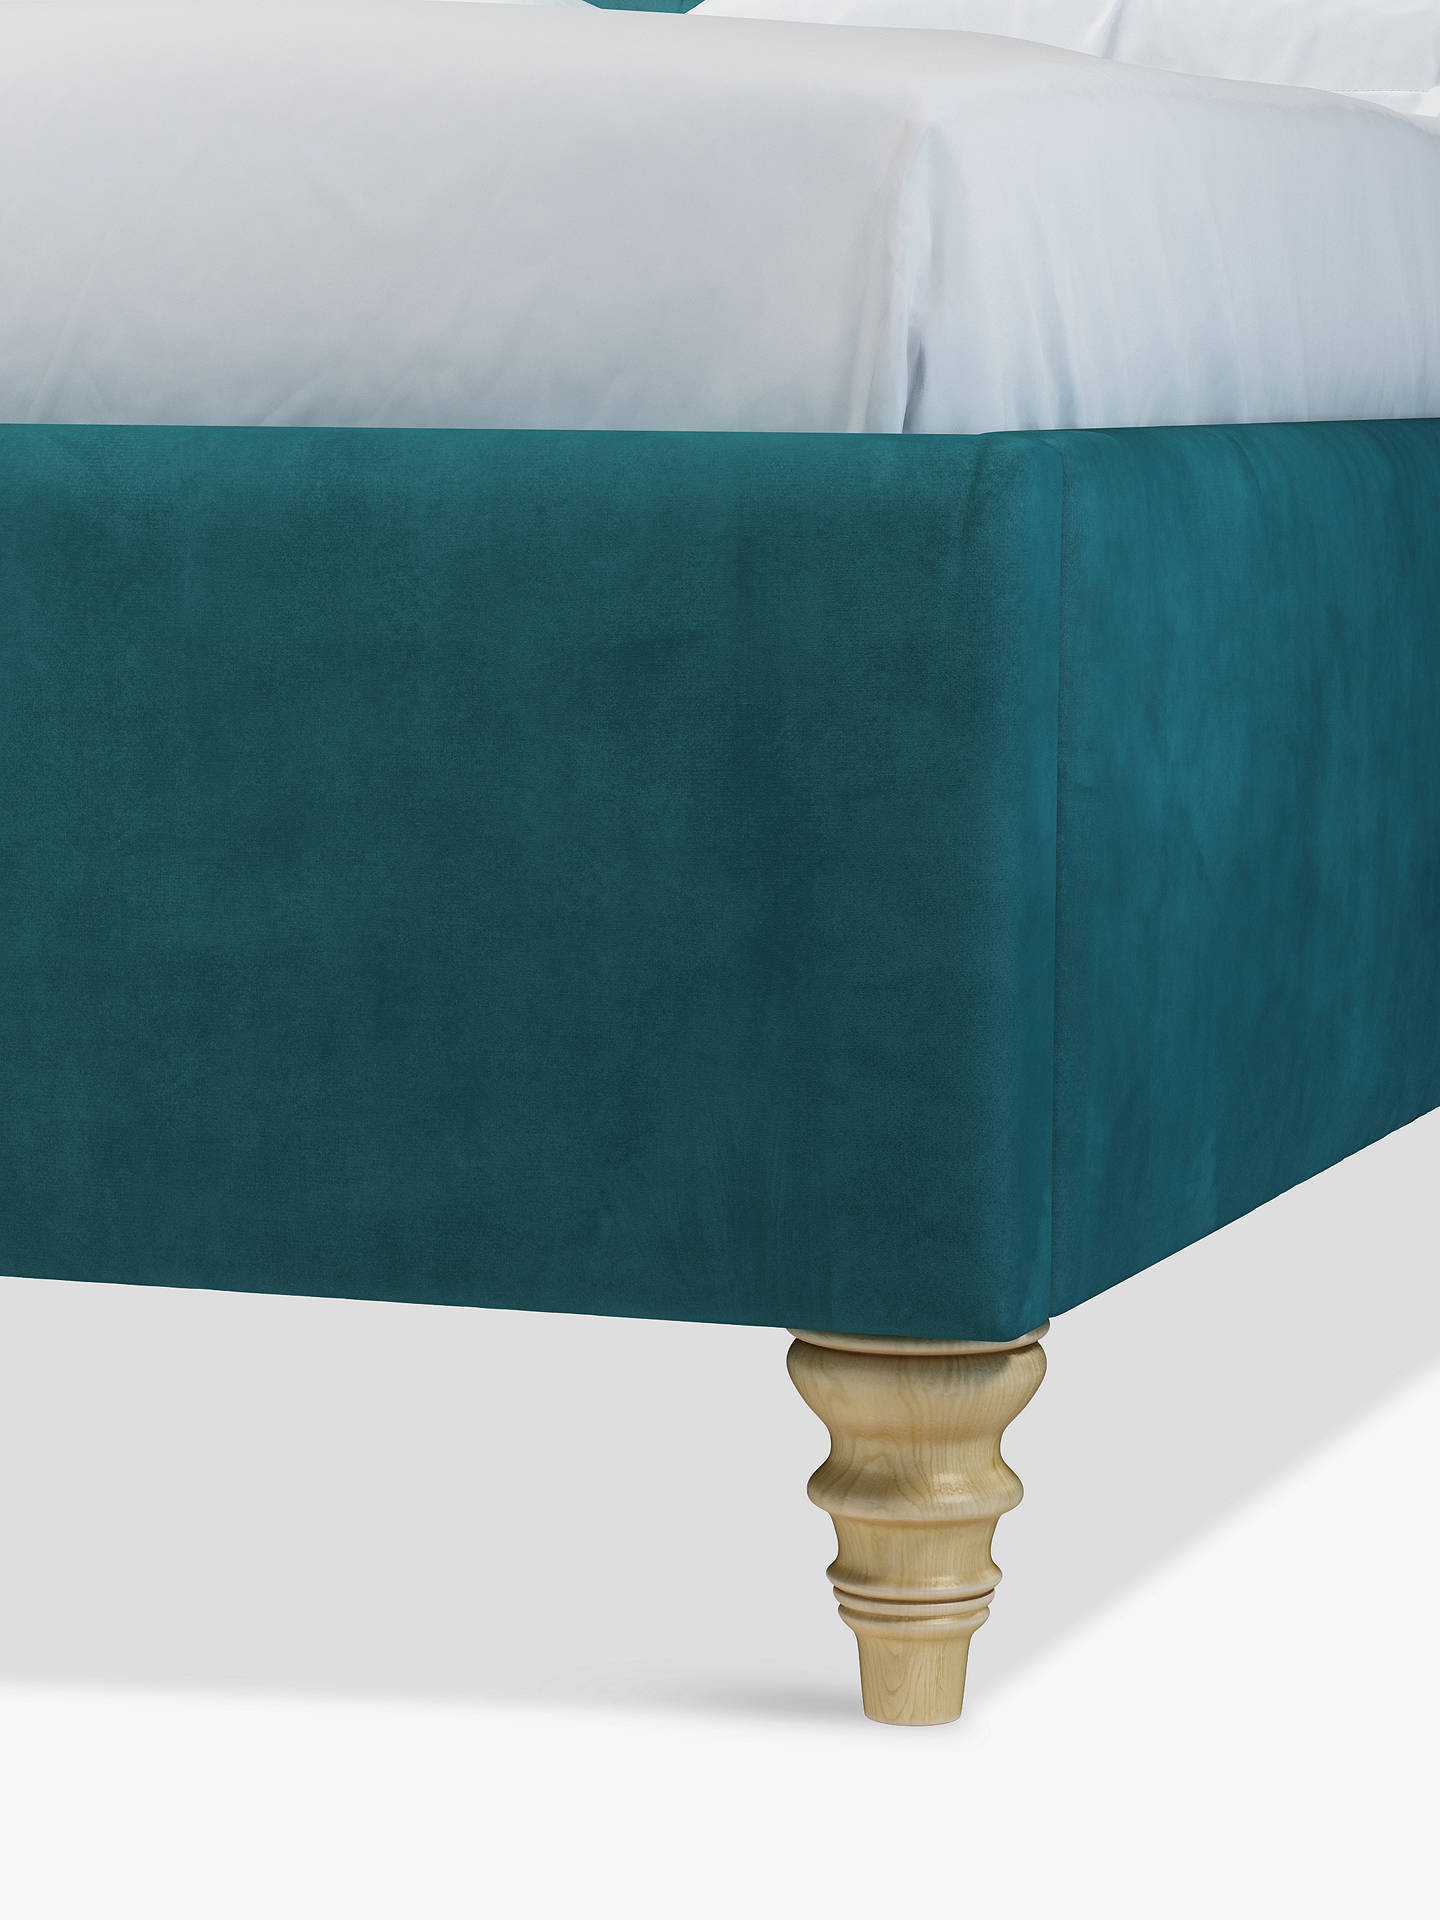 Buy John Lewis & Partners Rouen Upholstered Bed Frame, Double, Opulence Teal Online at johnlewis.com